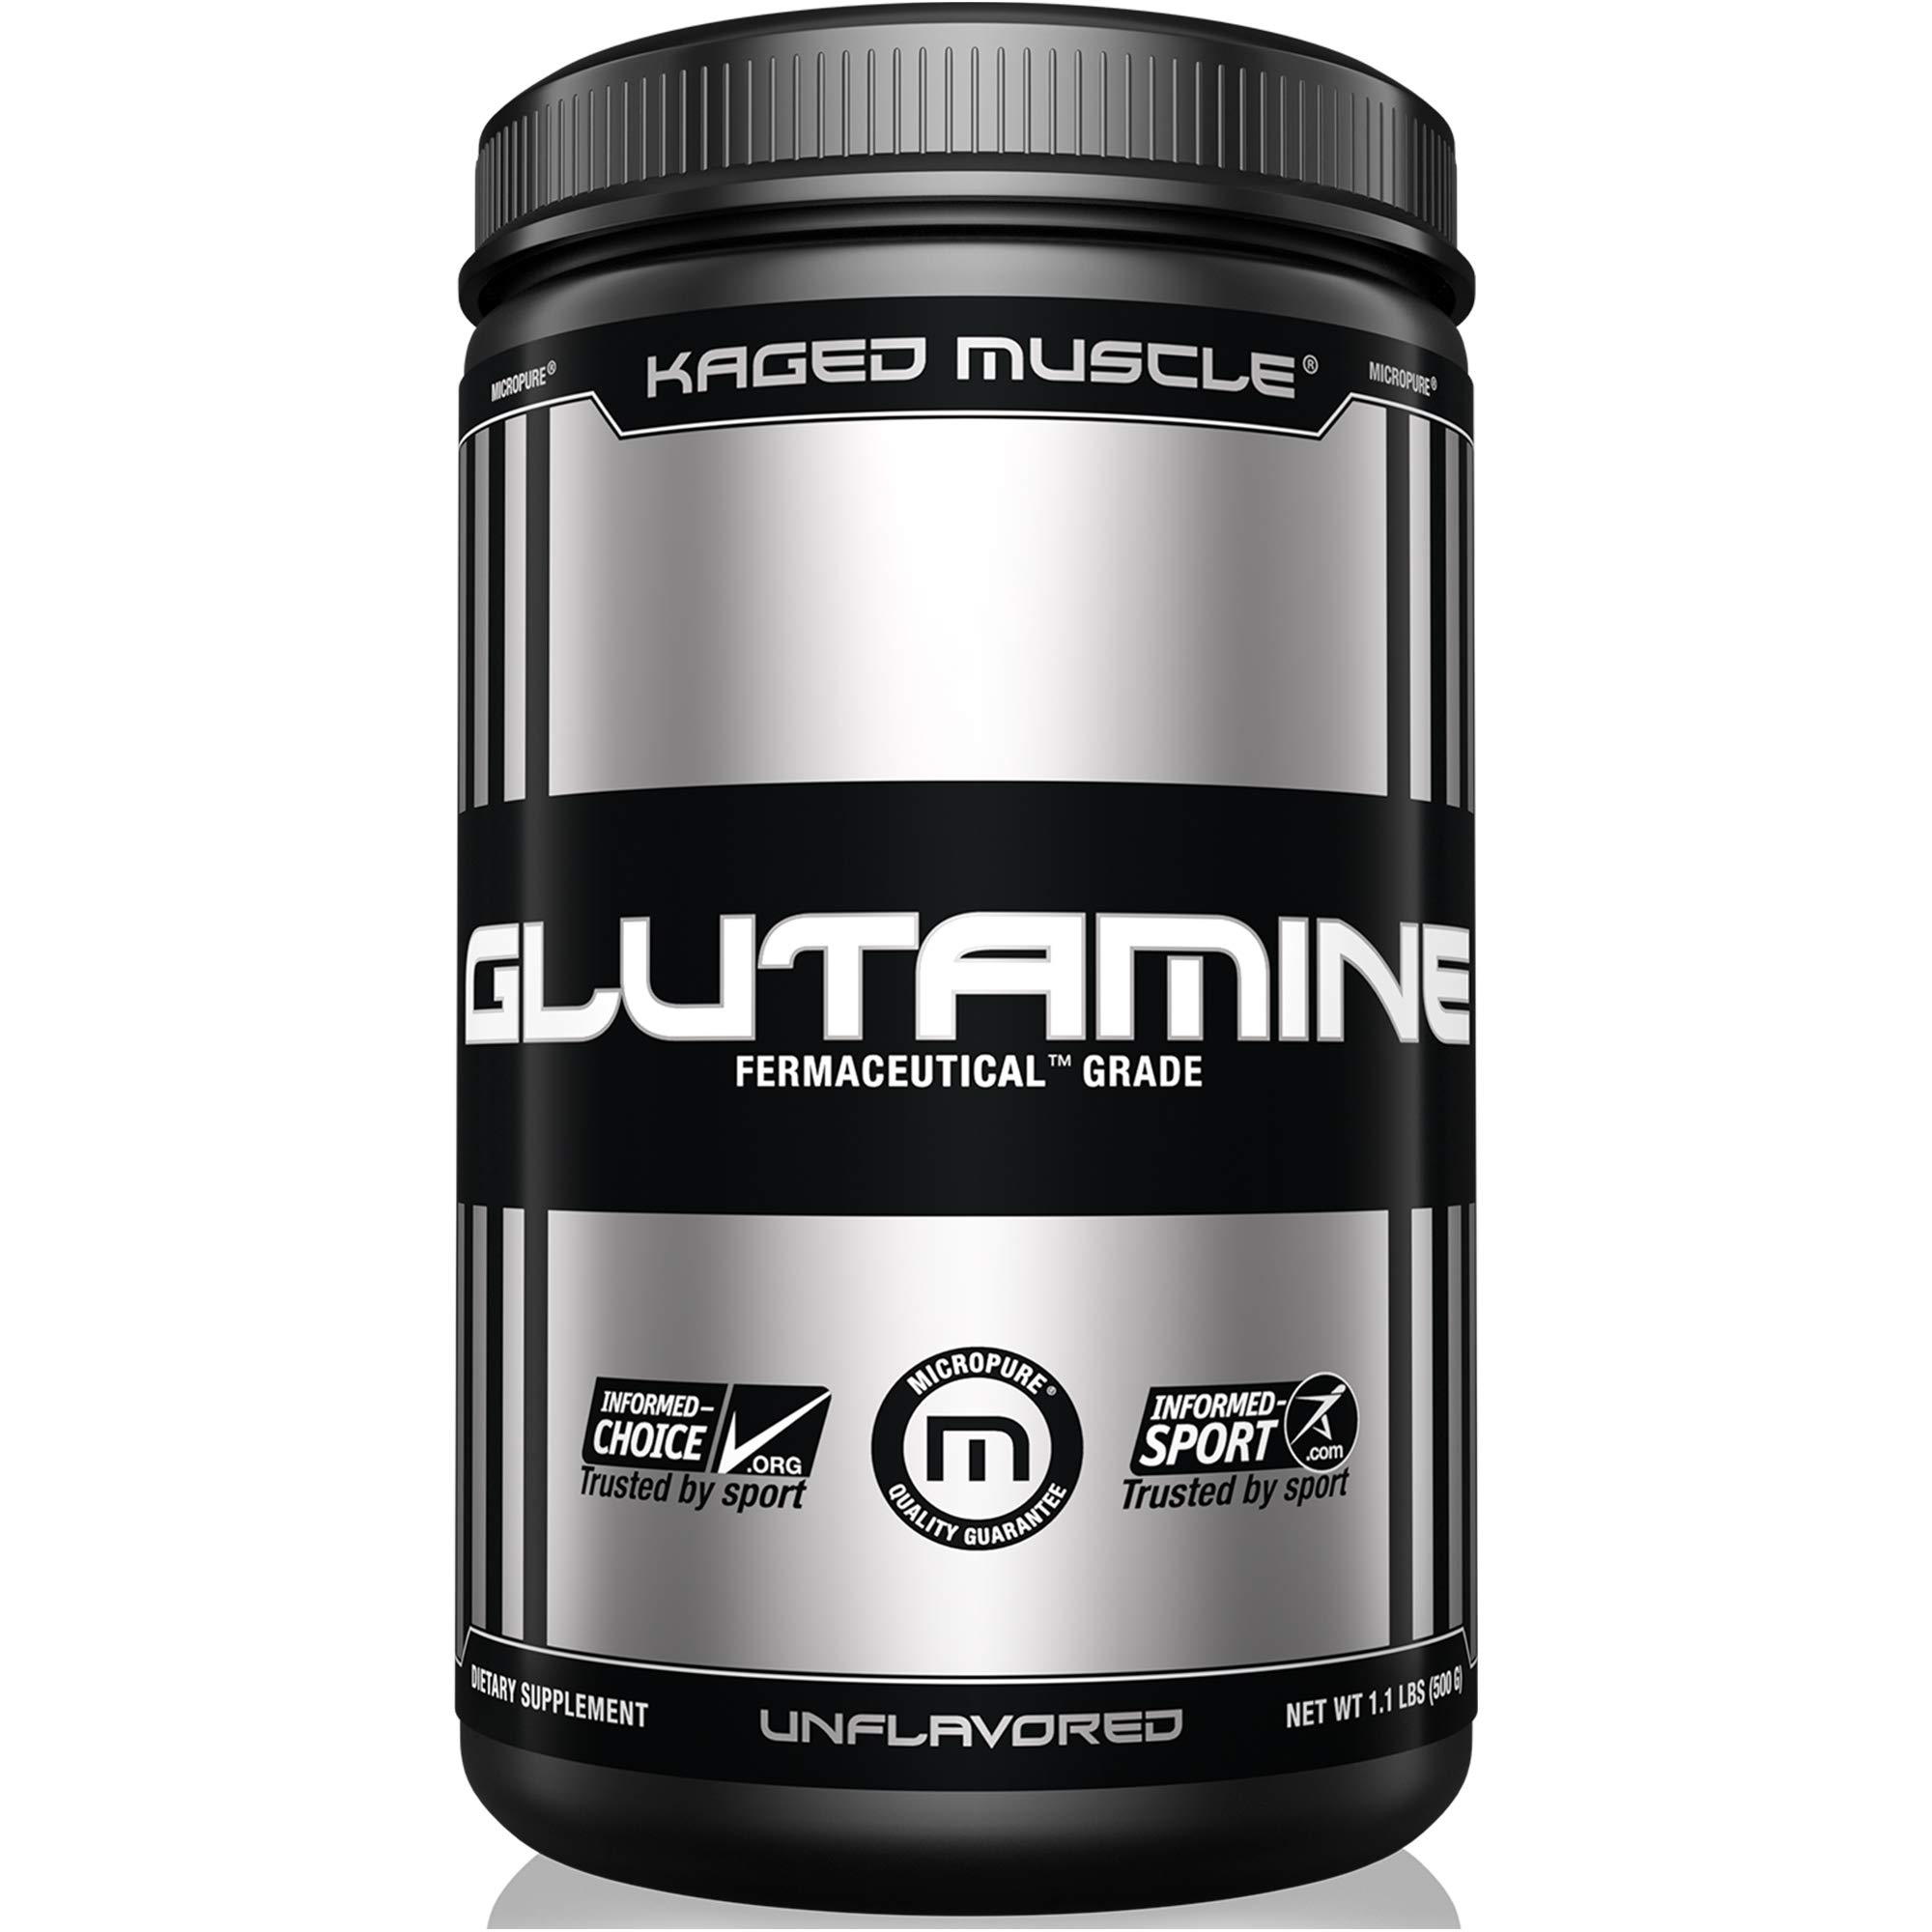 KAGED MUSCLE, L-Glutamine Powder 500 Gram, Vegan, Support Muscle Recovery, Post Workout, Glutamine, Banned-Substance Free, Unflavored, 100 Servings by Kaged Muscle